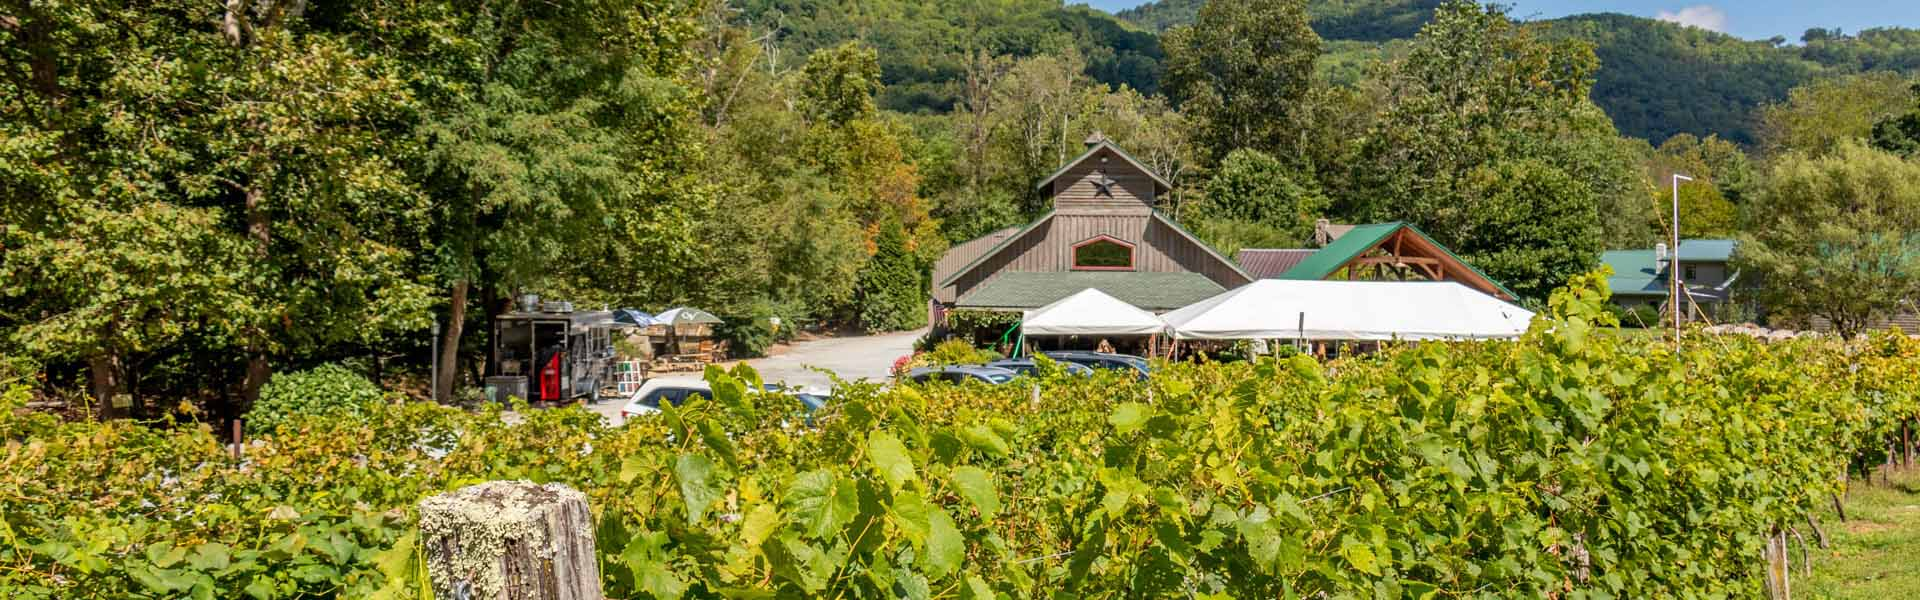 Appalachian High Country Wineries